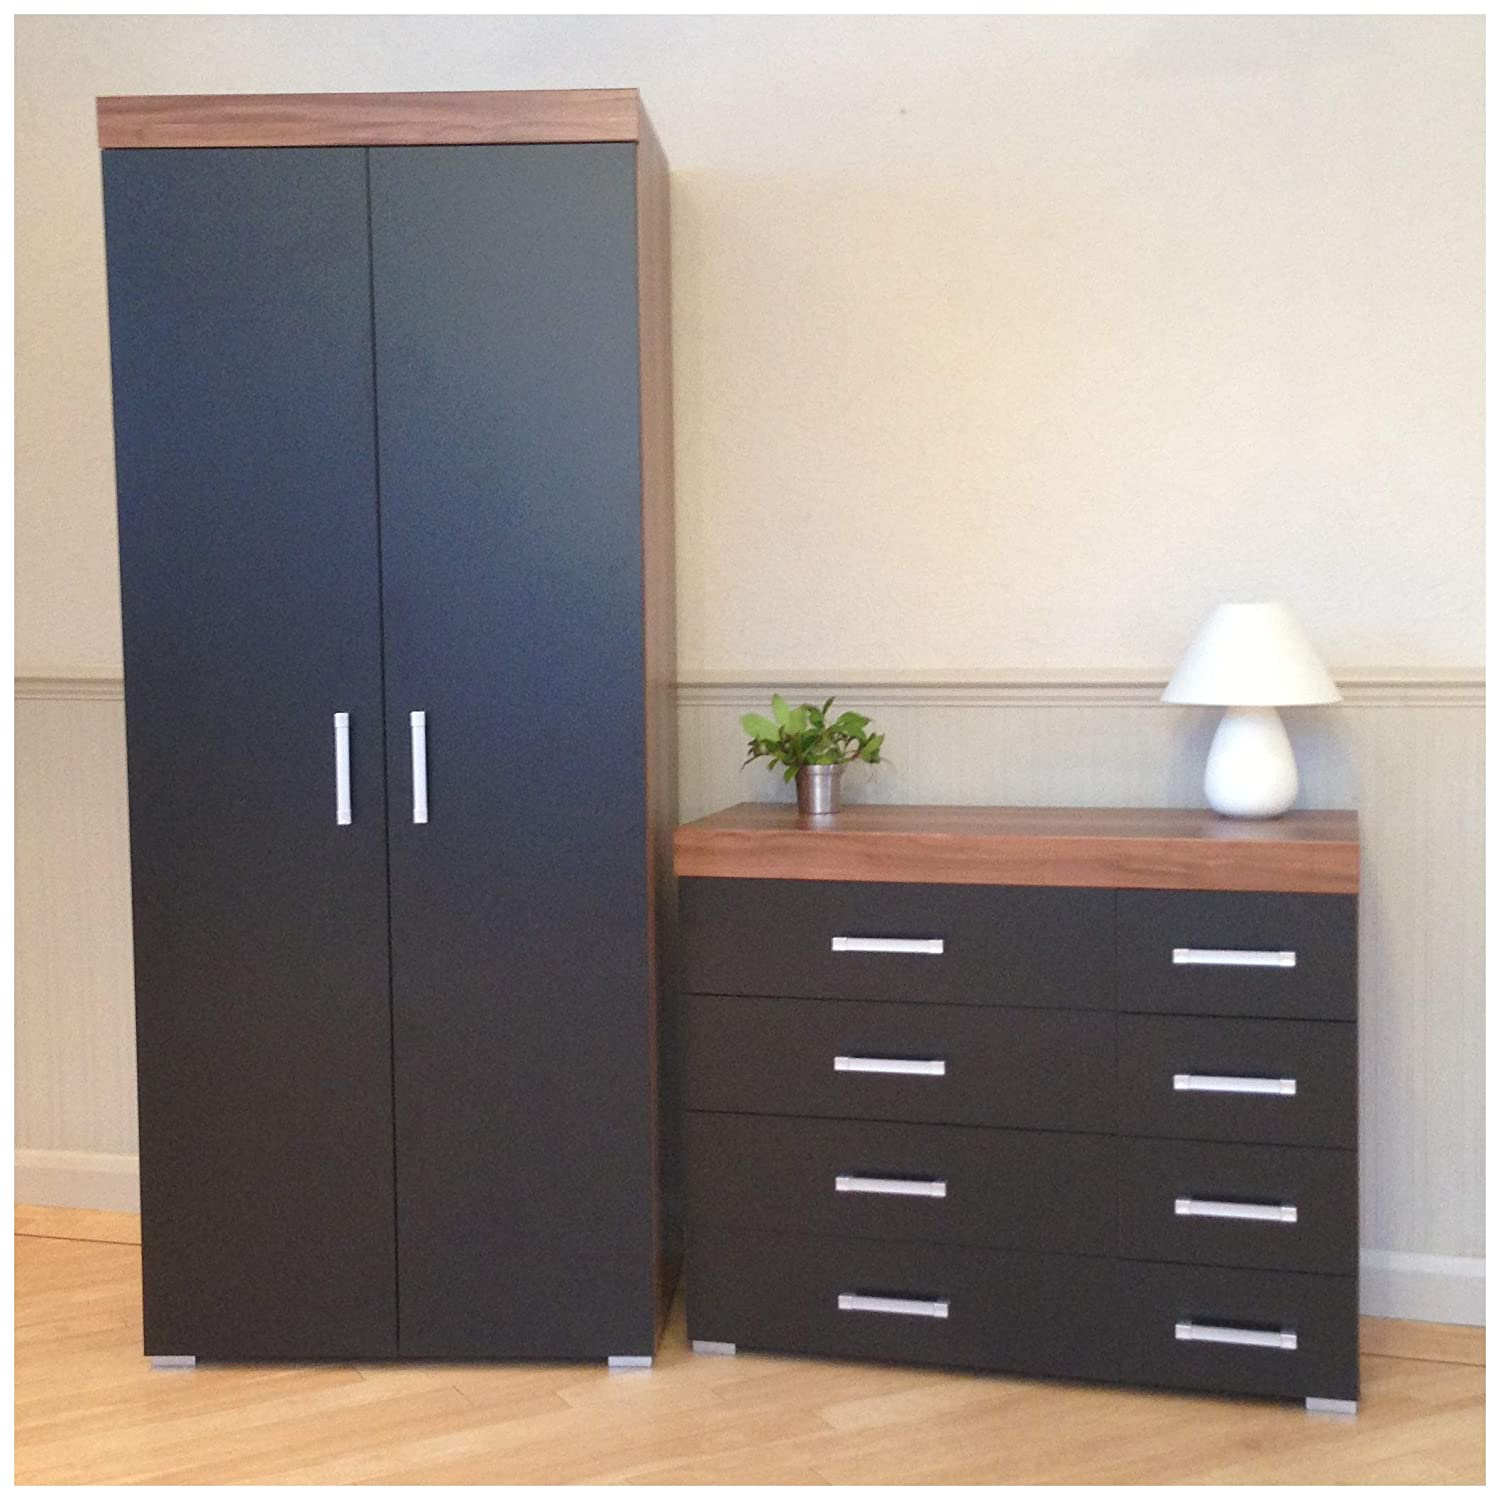 DRP Trading 2 Door Wardrobe & 4+4 Drawer Chest in Black & Walnut Bedroom Furniture Set 8 Draw